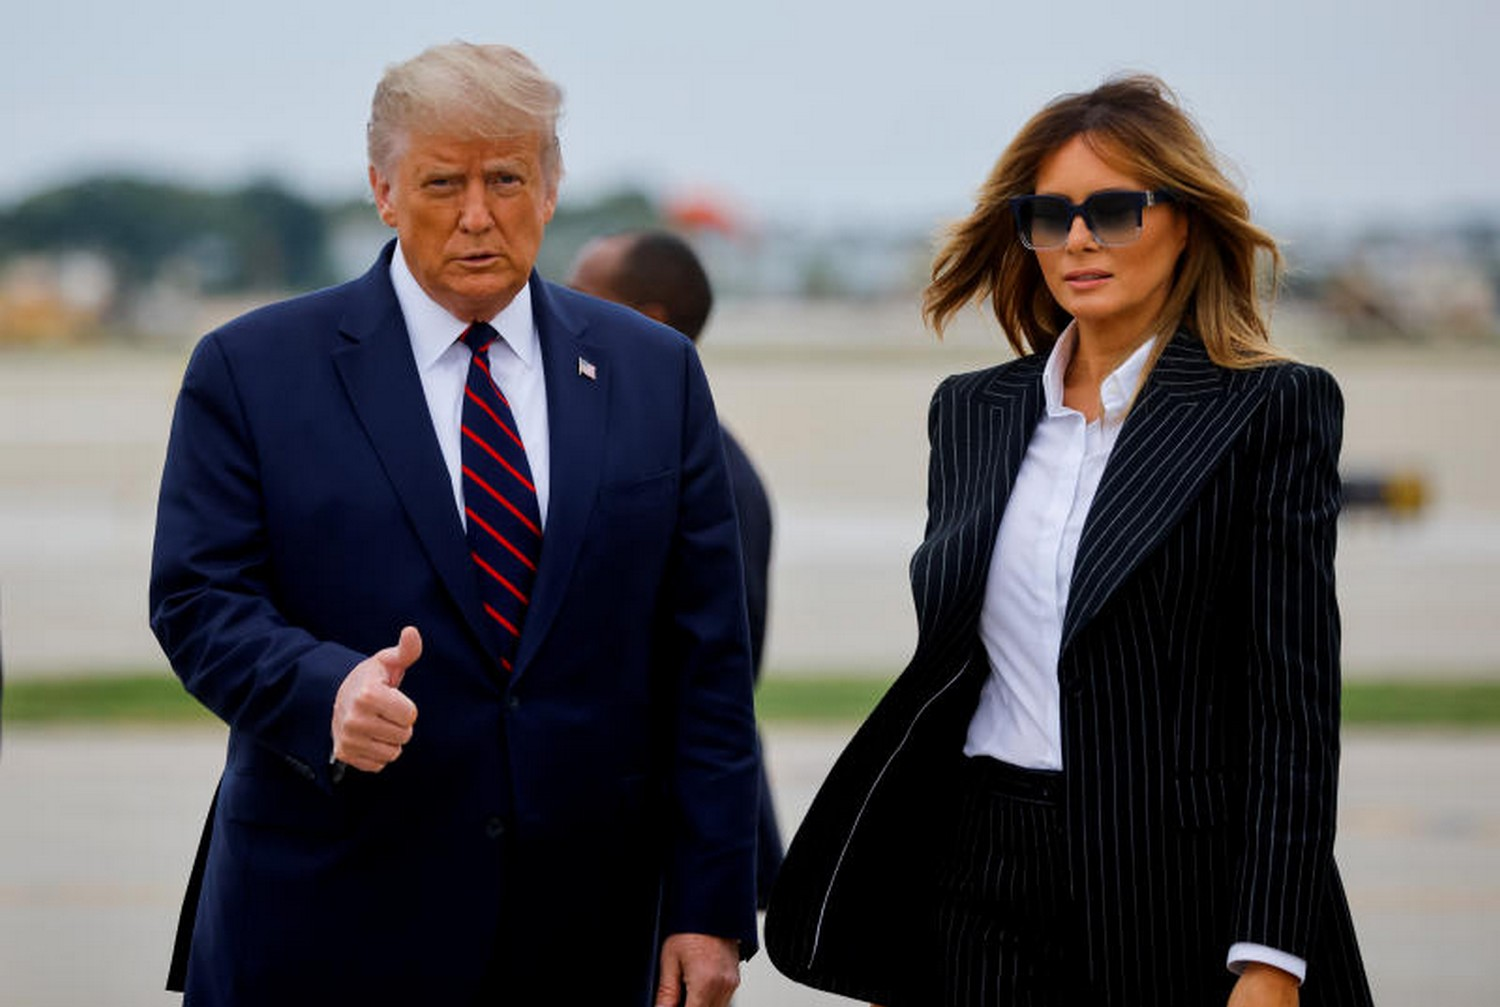 US President Donald Trump and First lady, Melania have tested positive for COVID-19